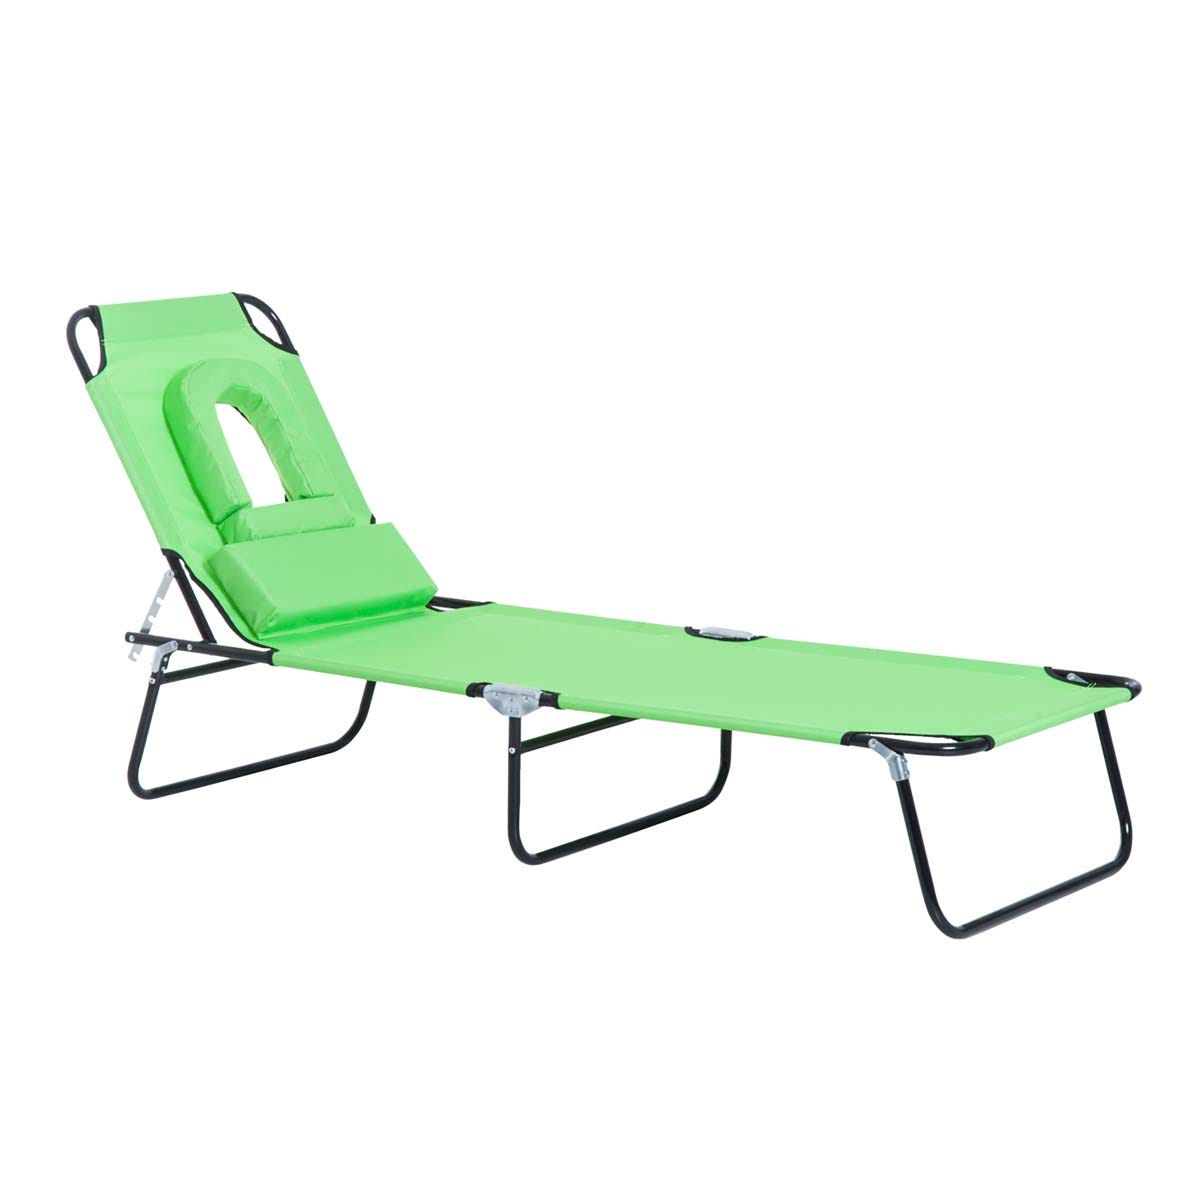 Outsunny Premium Folding Sun Lounger with Reading Hole - Green